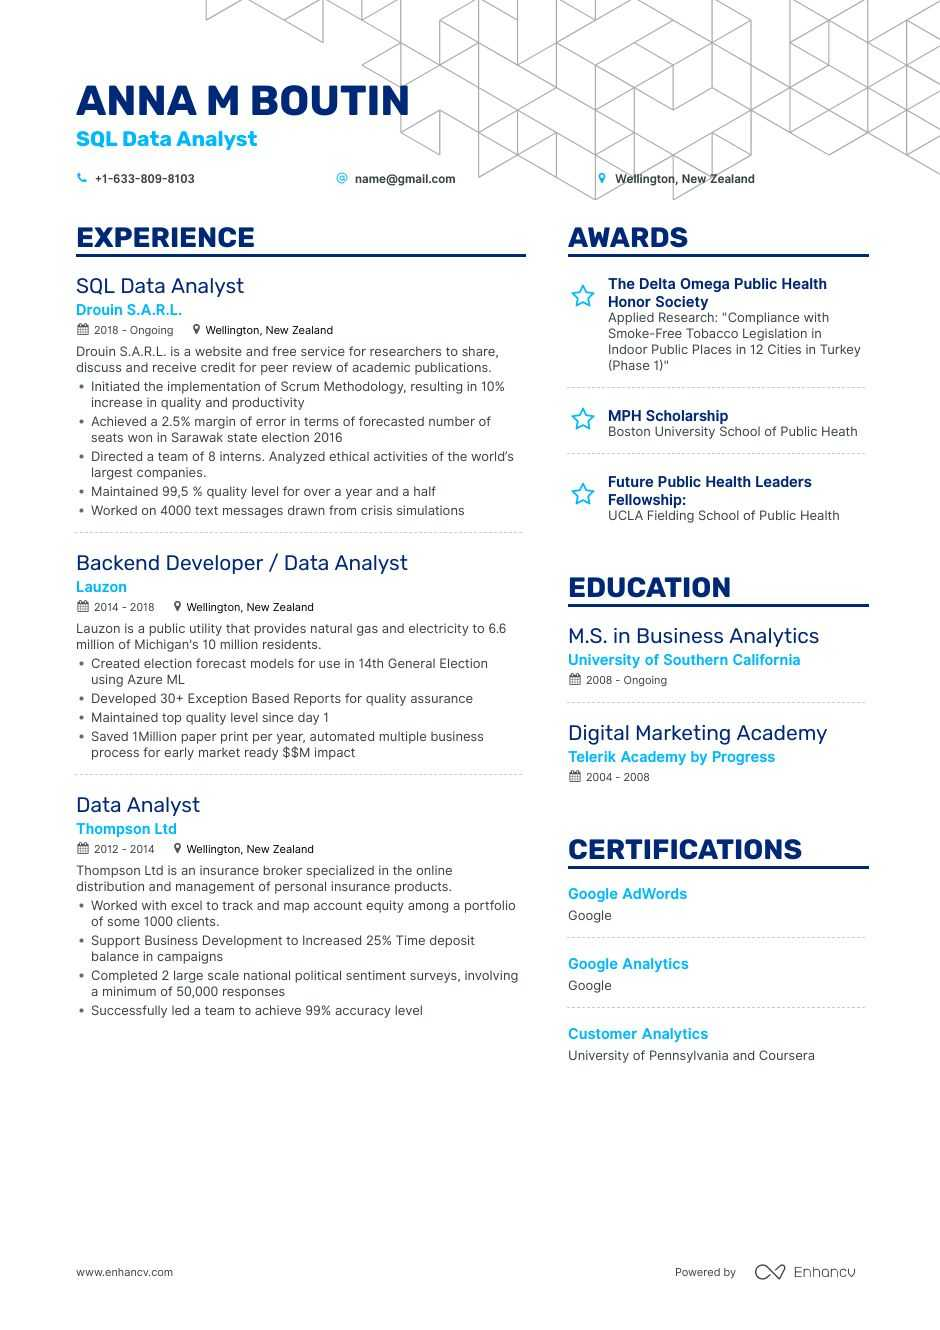 Sql Data Analyst Resume Examples Guide Amp Pro Tips Enhancv